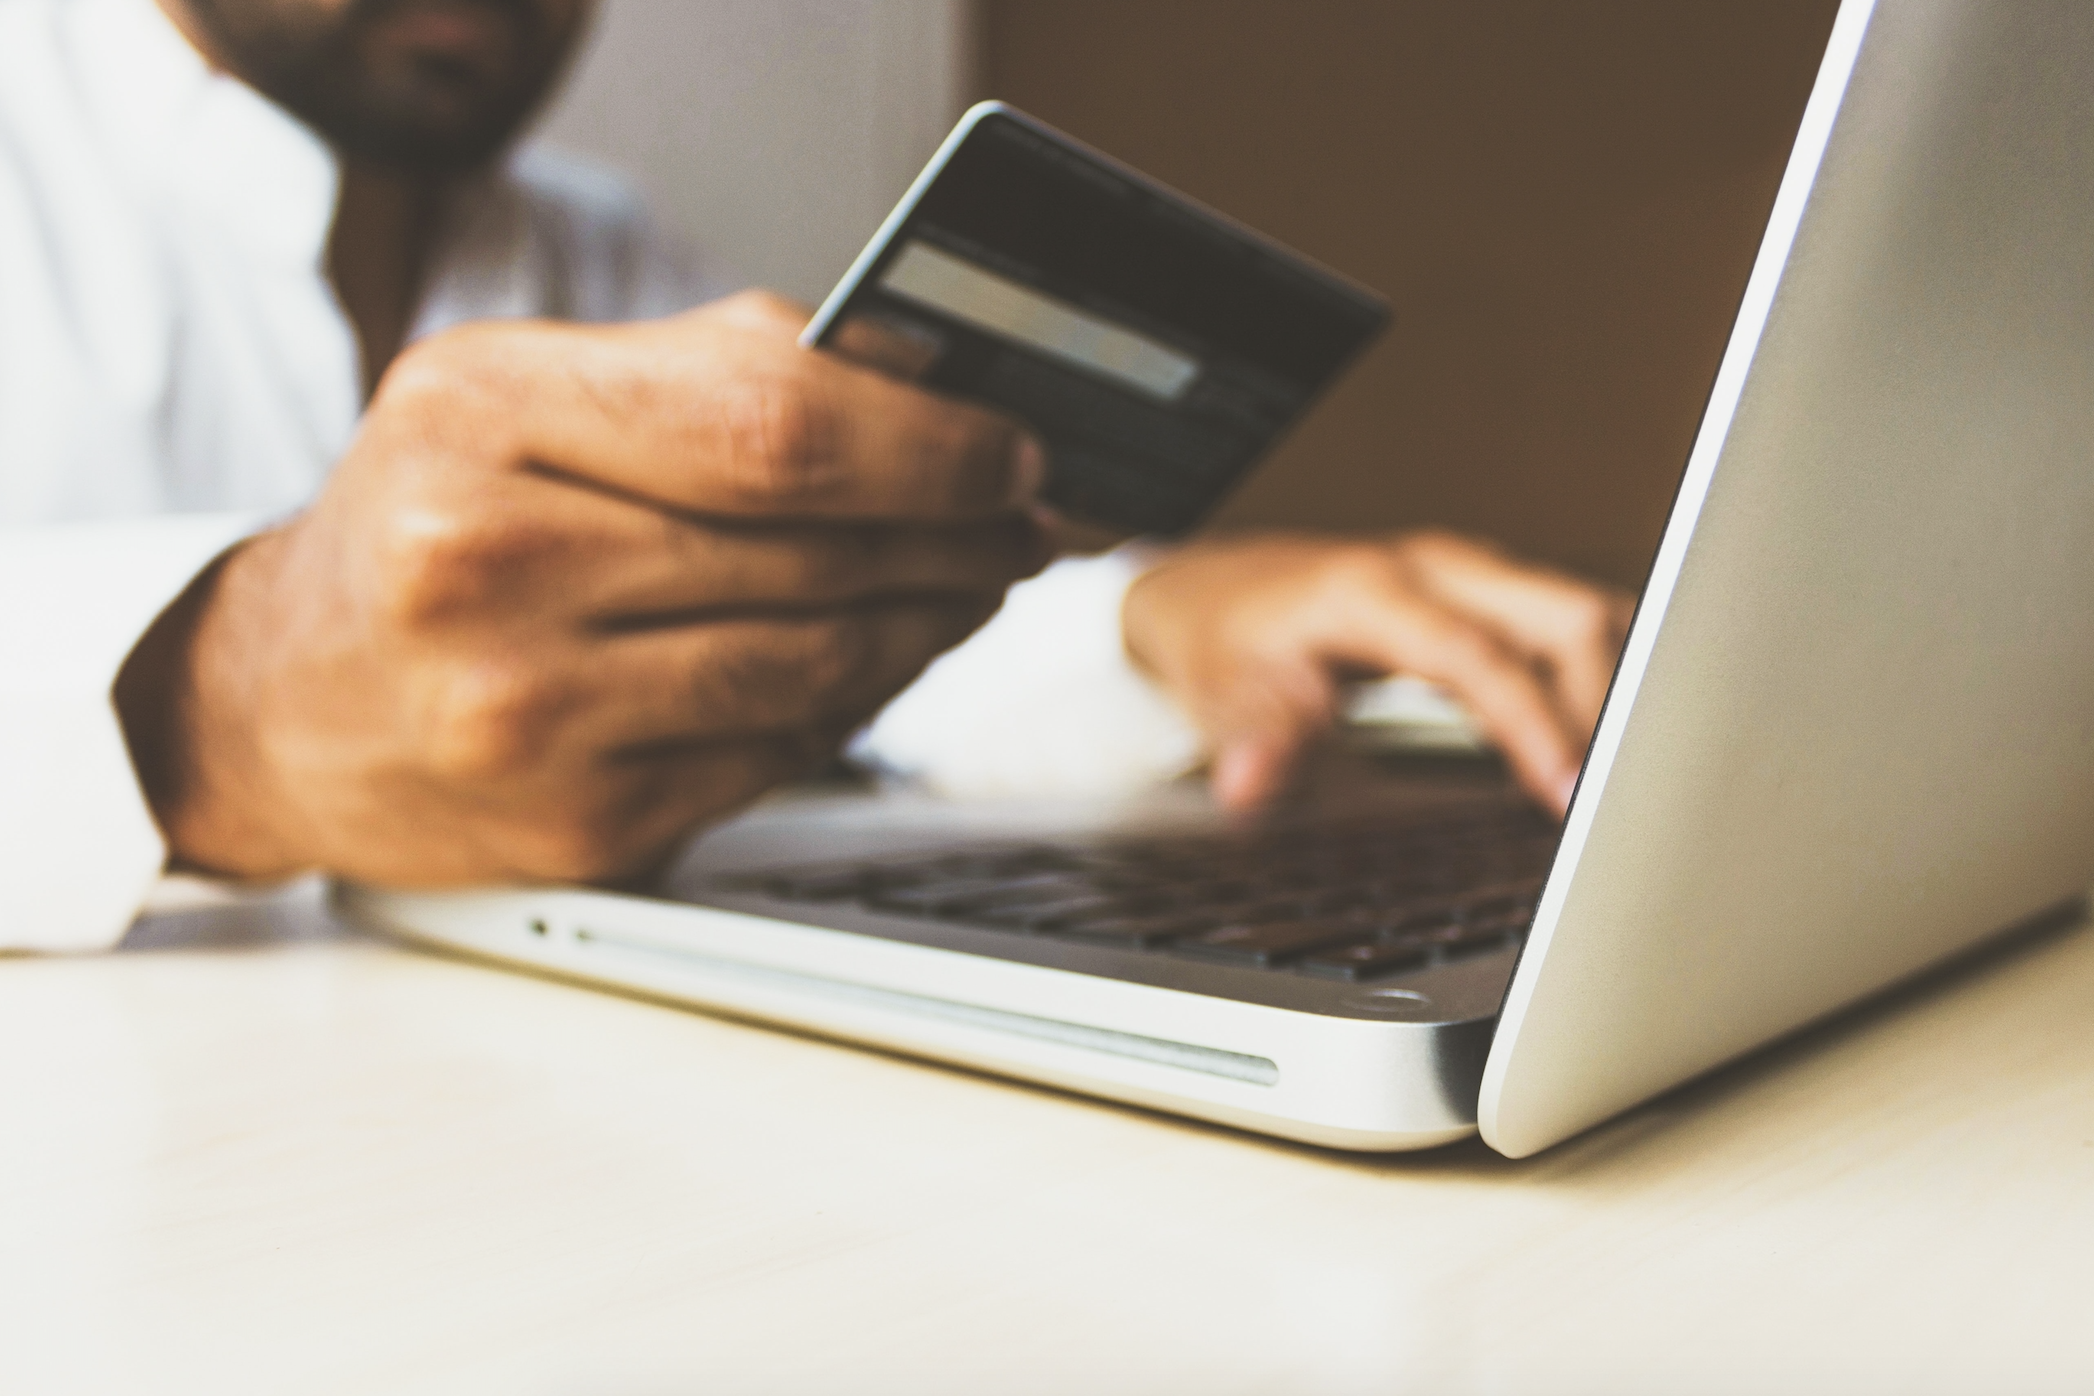 person sitting at laptop using their debit card to make a purchase